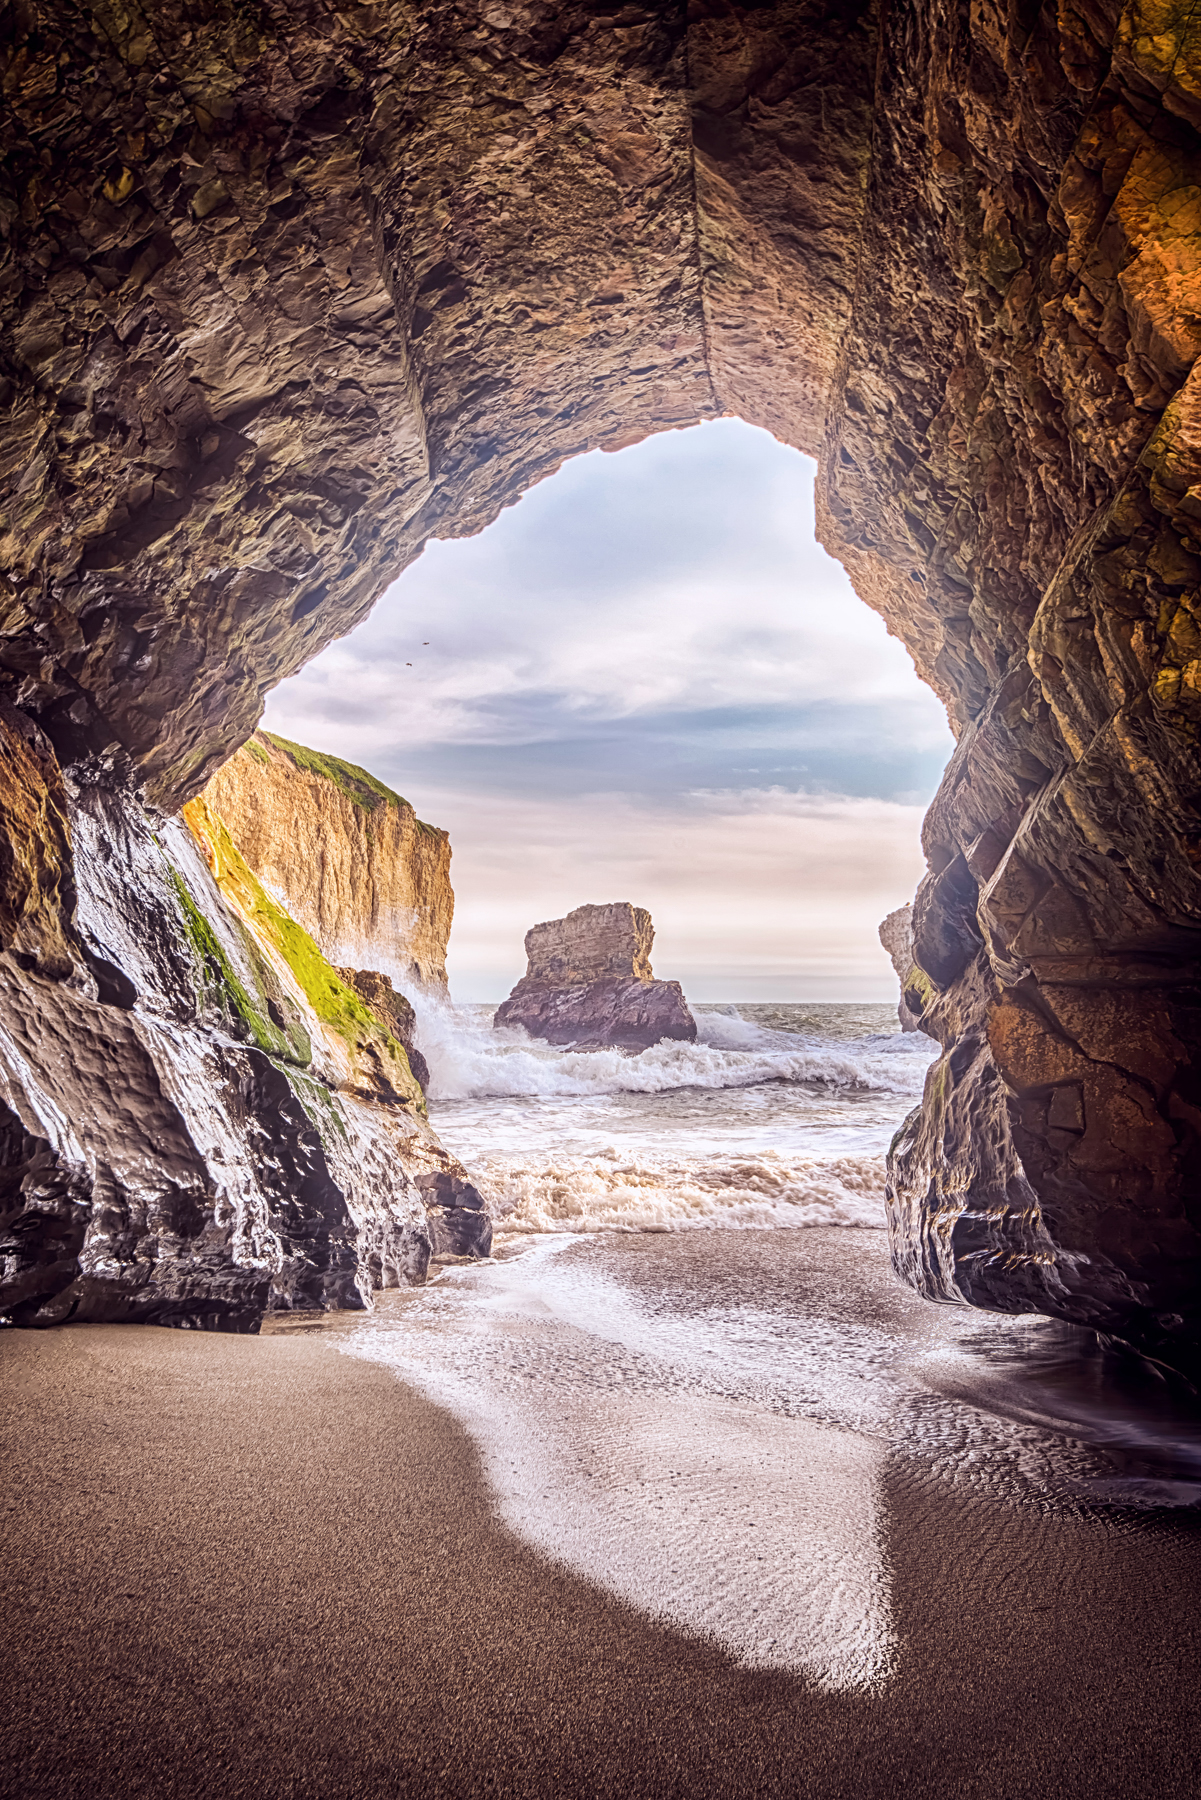 GATEWAY TO THE SEA